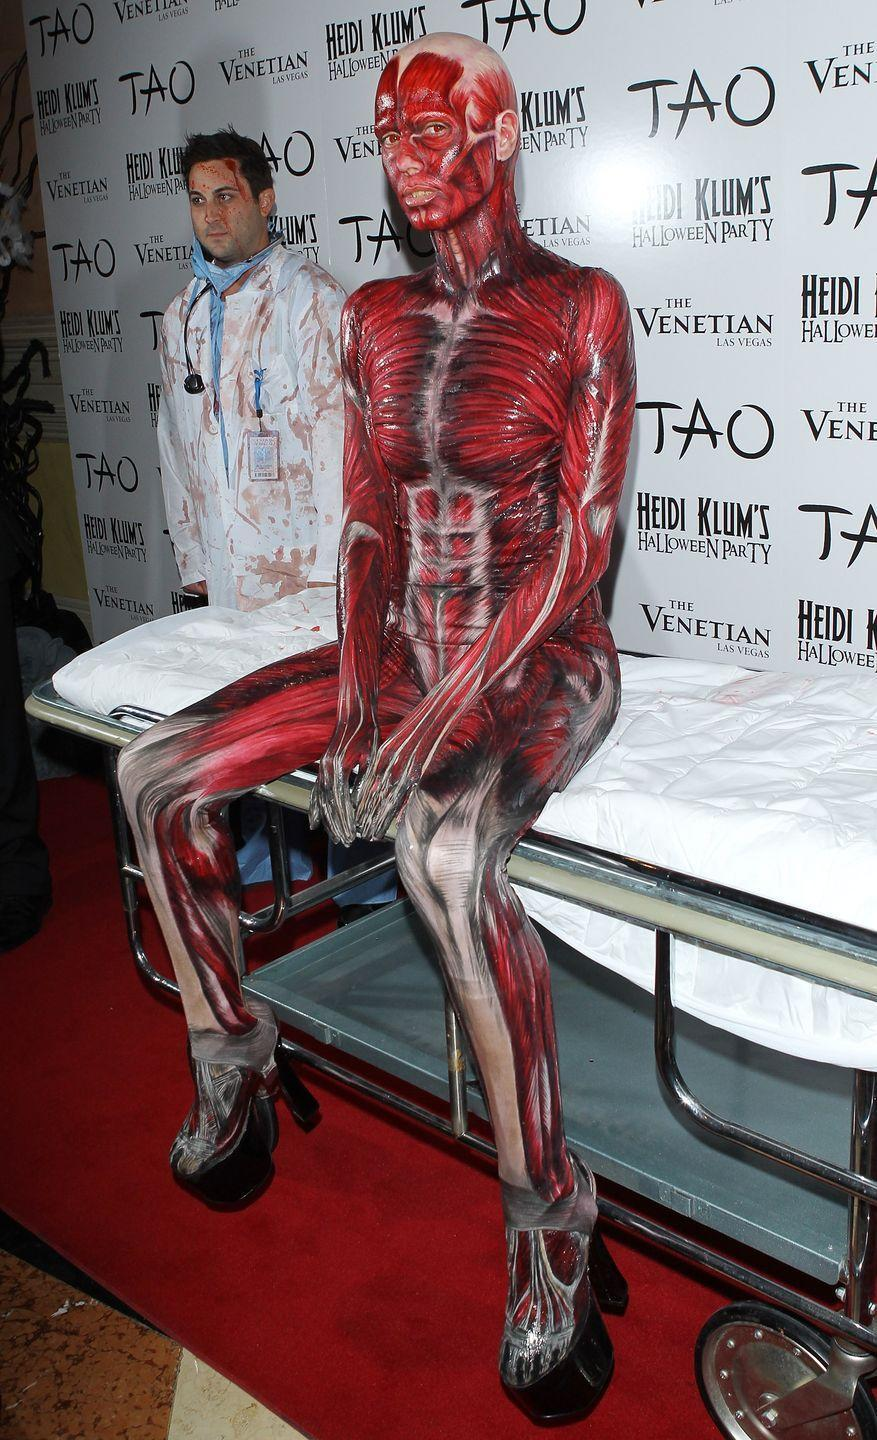 <p>Celebrating Bodyworlds - the exhibition that toured the world featuring preserved cadavars - Heidi dressed up as a dead body on a gurney. </p><p>Well, it's one way to travel to a party. </p>